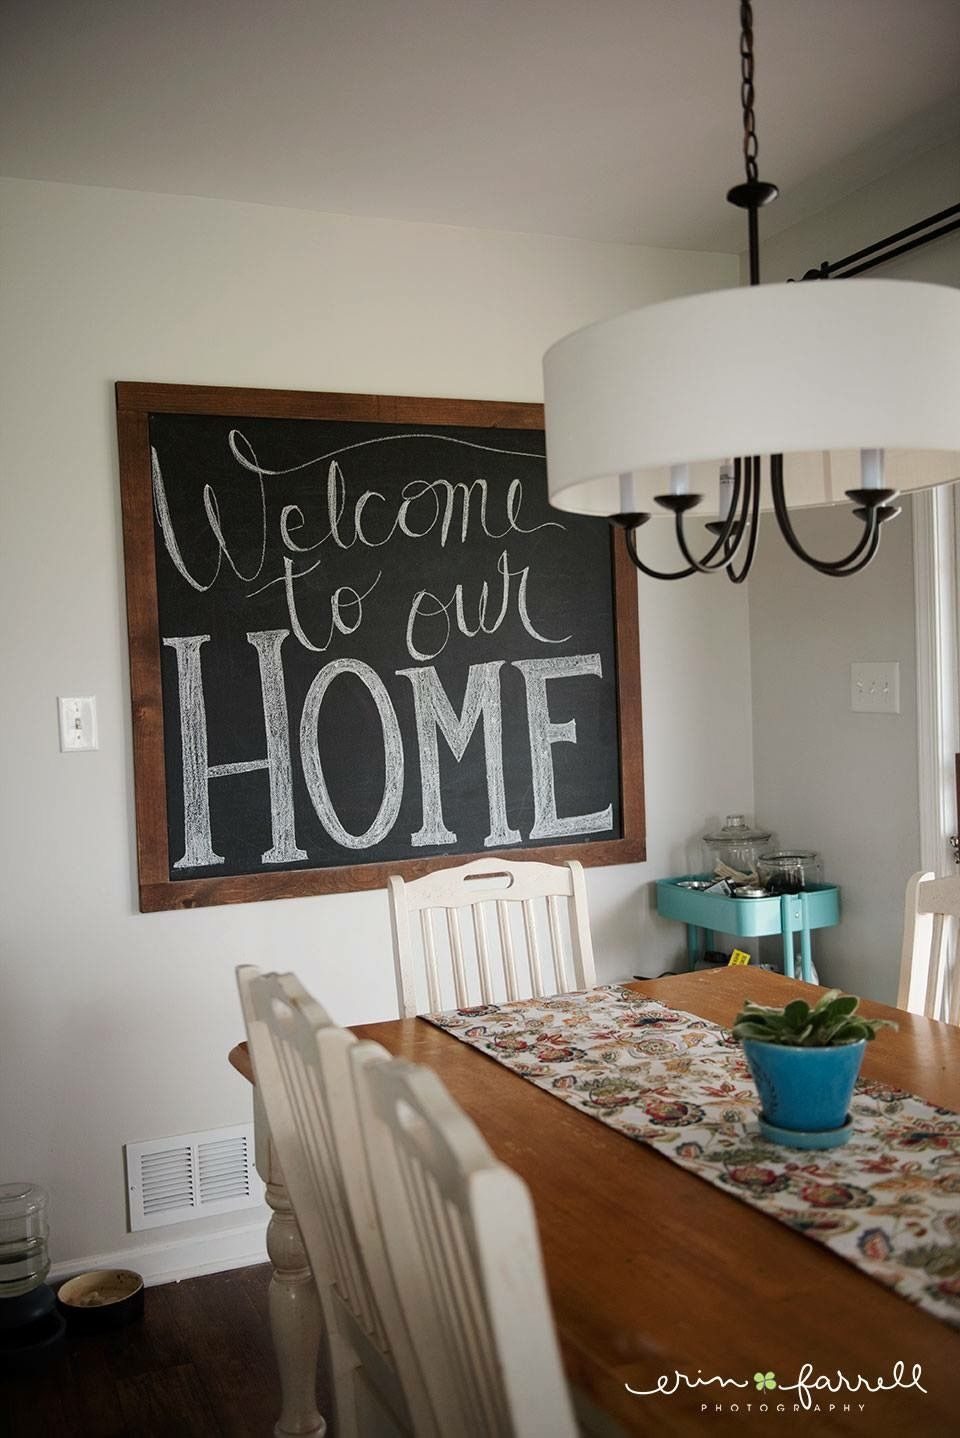 Chalkboard Art Welcome To Our Home Large Chalkboard In Kitchen Chalkboard Quotes Chalkboard Art Kitchen Chalkboard Home Decor